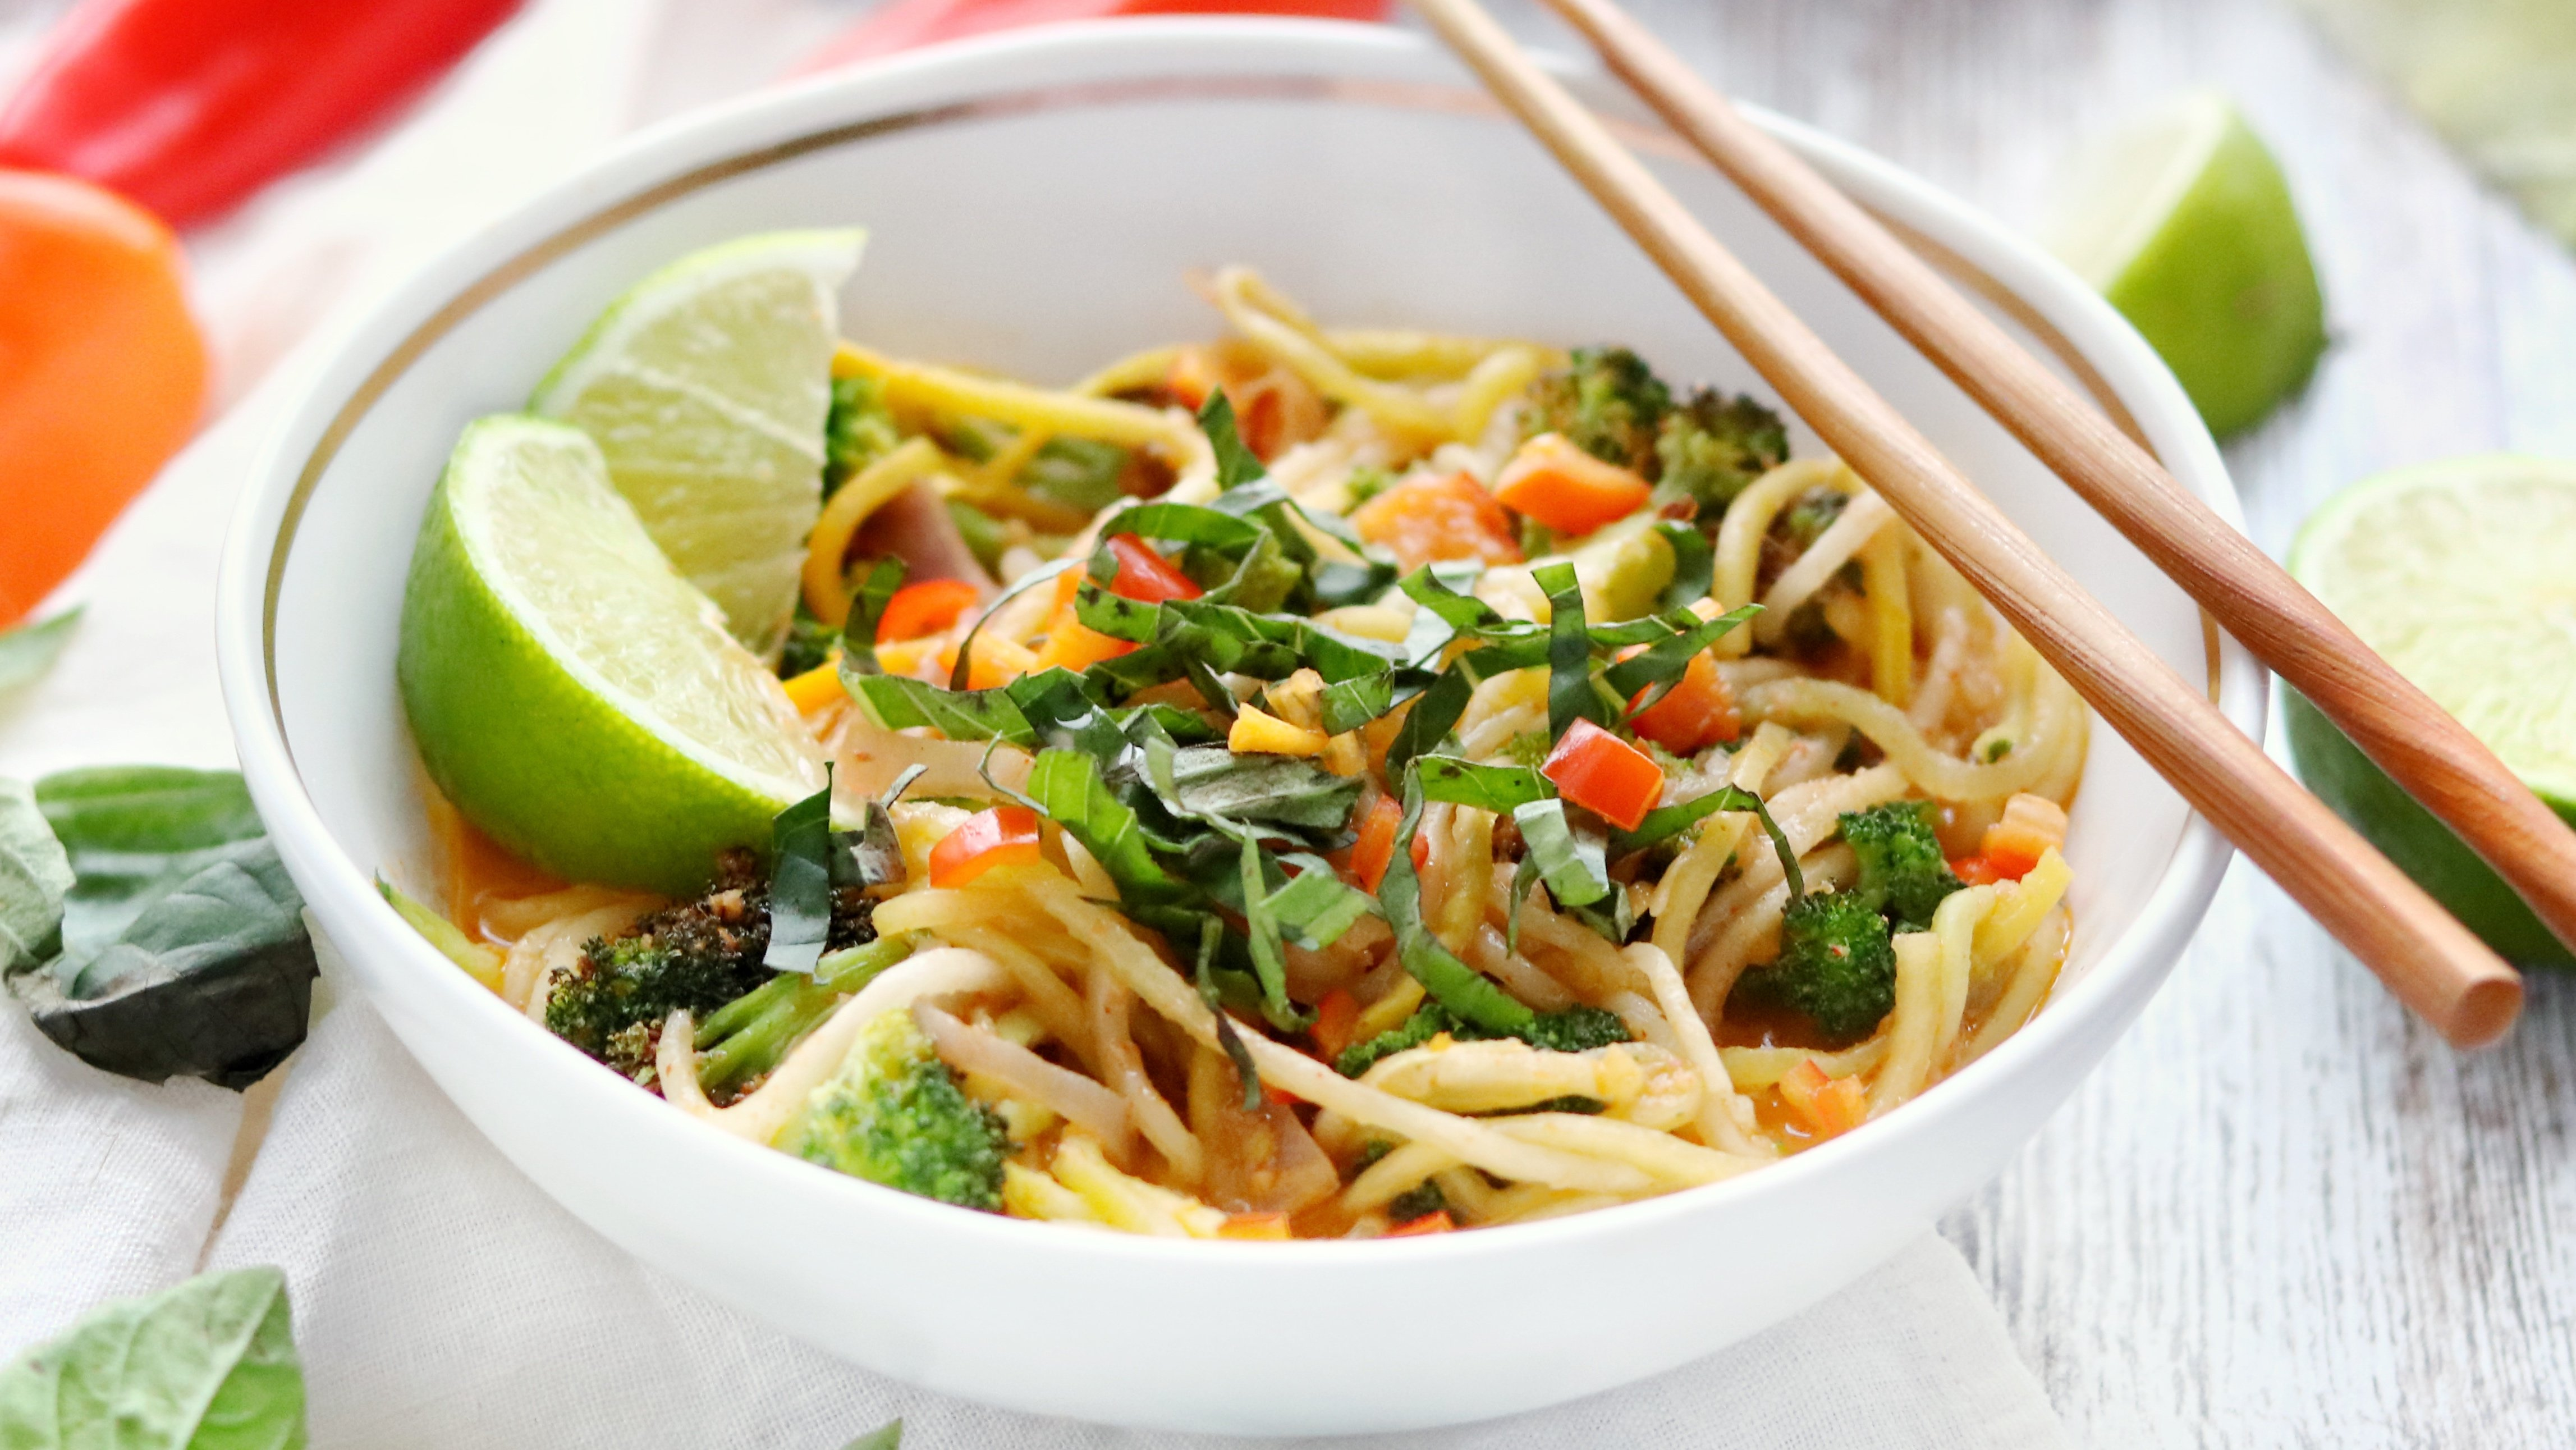 Low Carb Vegan Thai Coconut Noodle Bowl